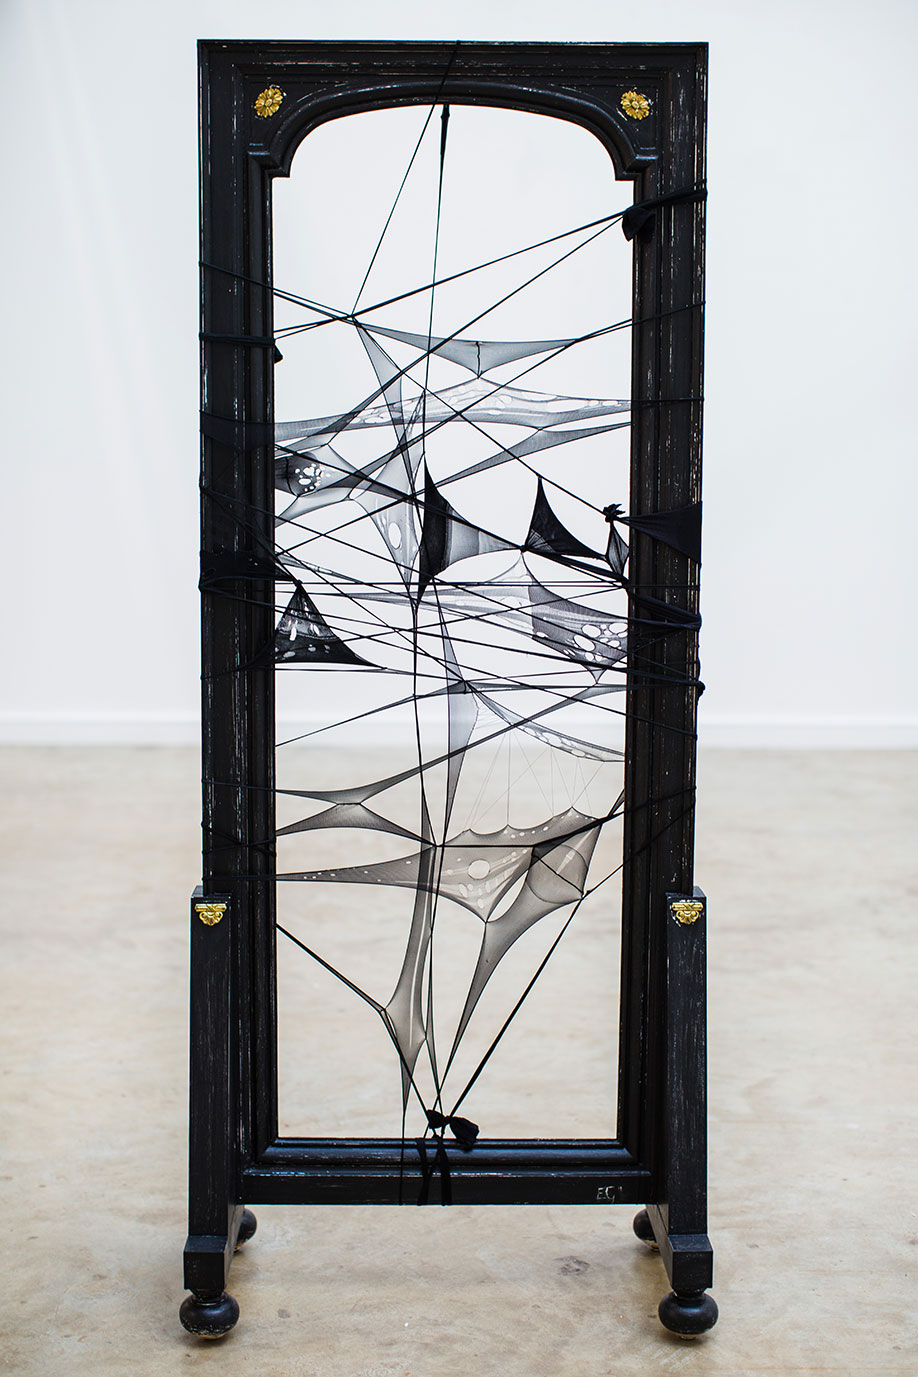 <b>Title:</b>In the Wake of Barely Black<br /><b>Year:</b>2019<br /><b>Medium:</b>Used nylon tights, cotton thread and eco-friendly water based acrylic paint on vintage chevalier shop mirror<br /><b>Size:</b>192 x 78 x 40cm